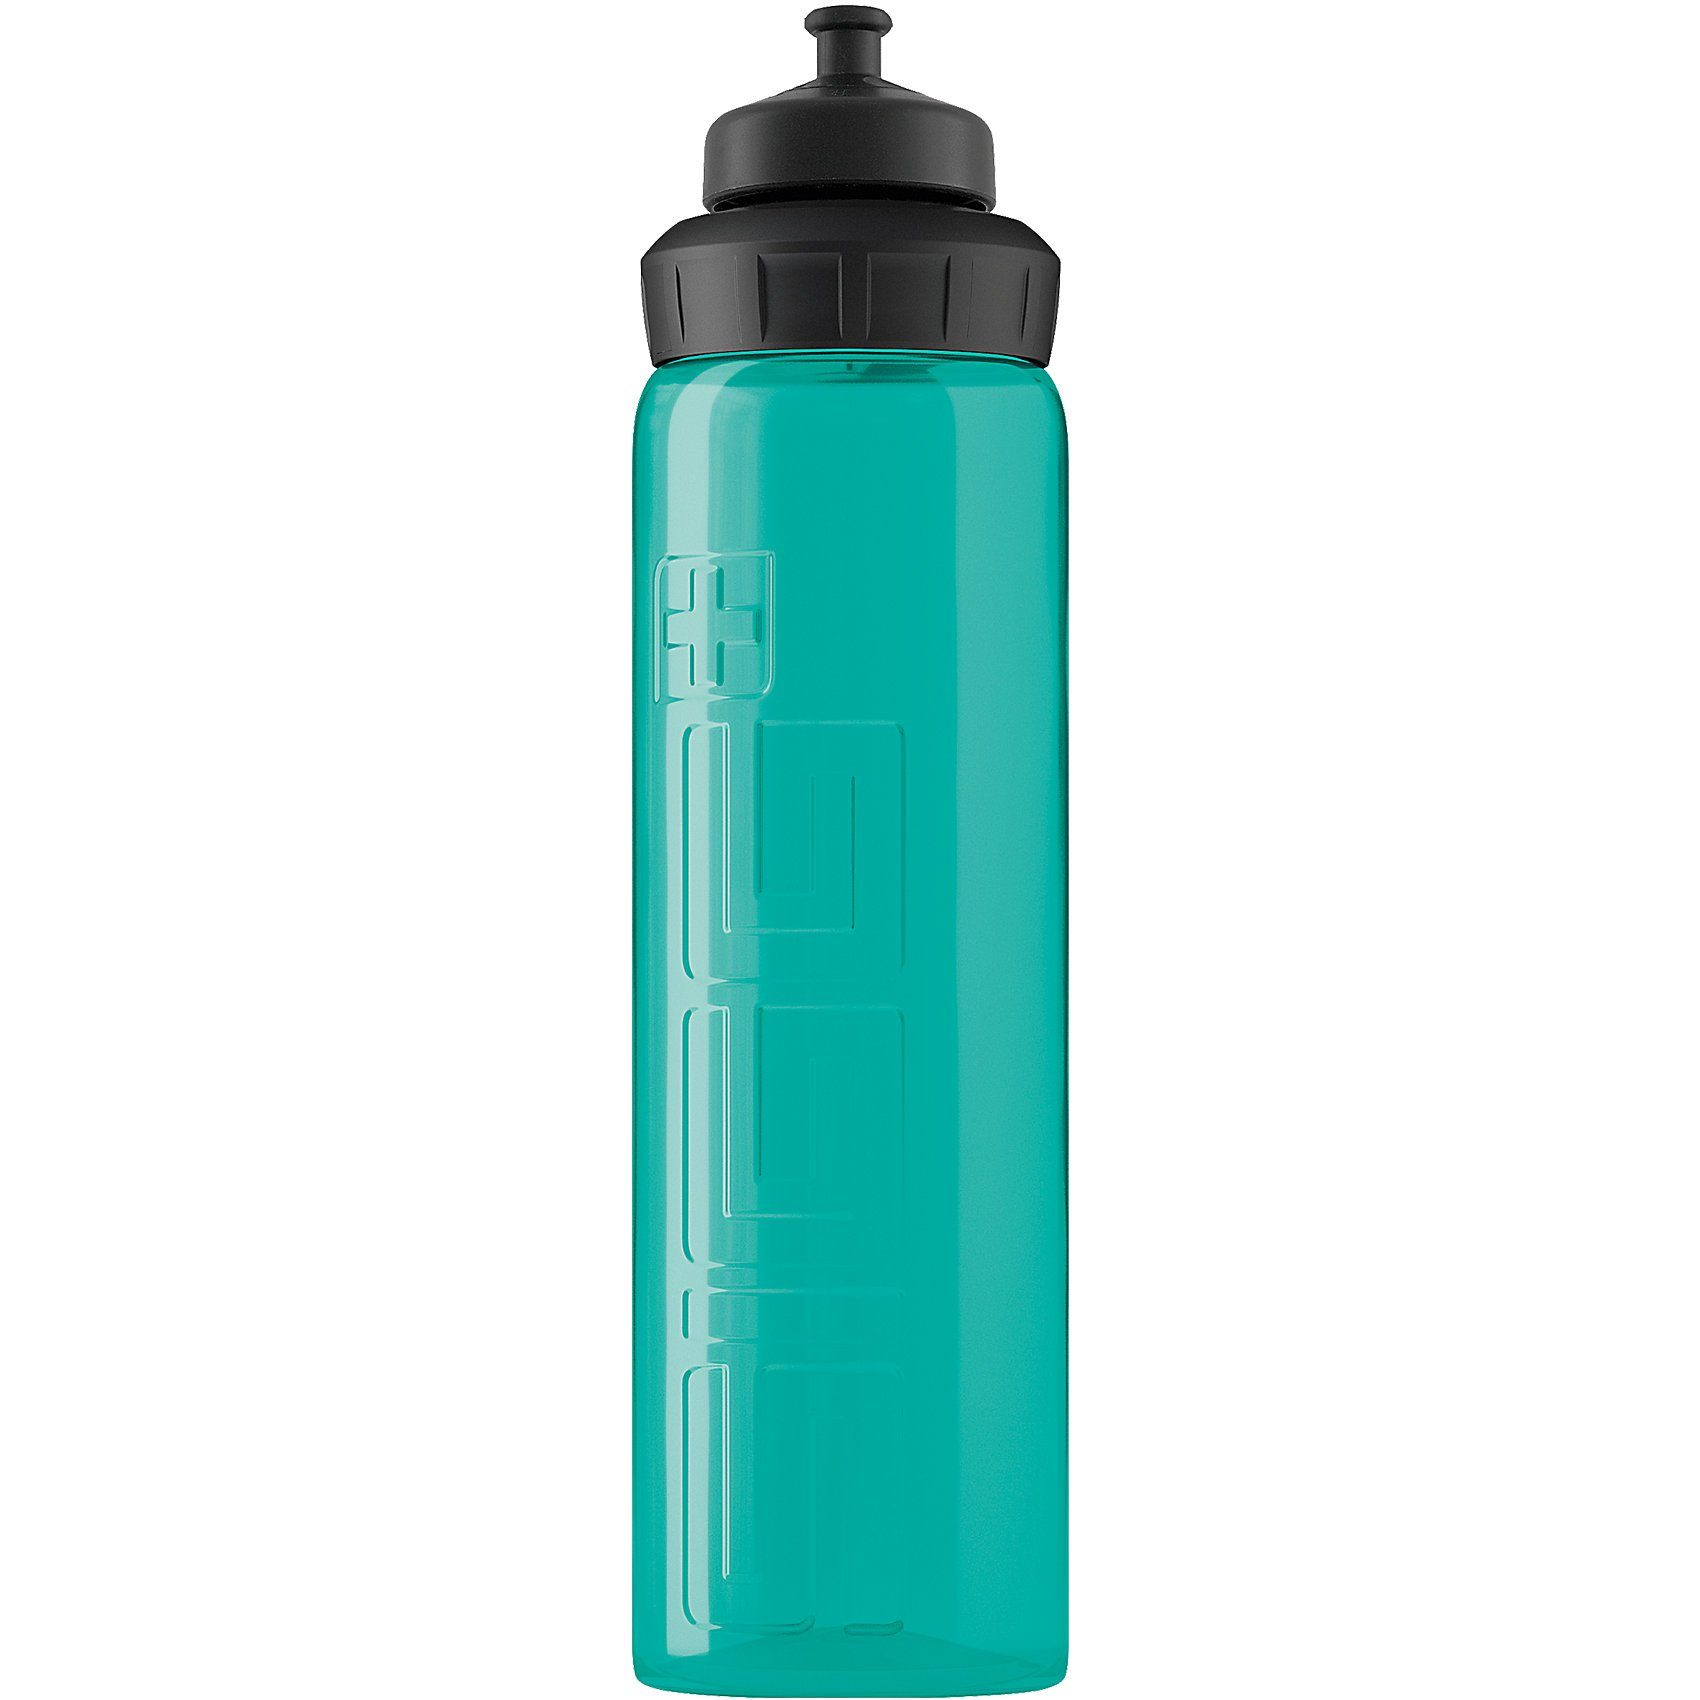 Sigg Trinkflasche VIVA 3-STAGE Aqua transparent, 750 ml